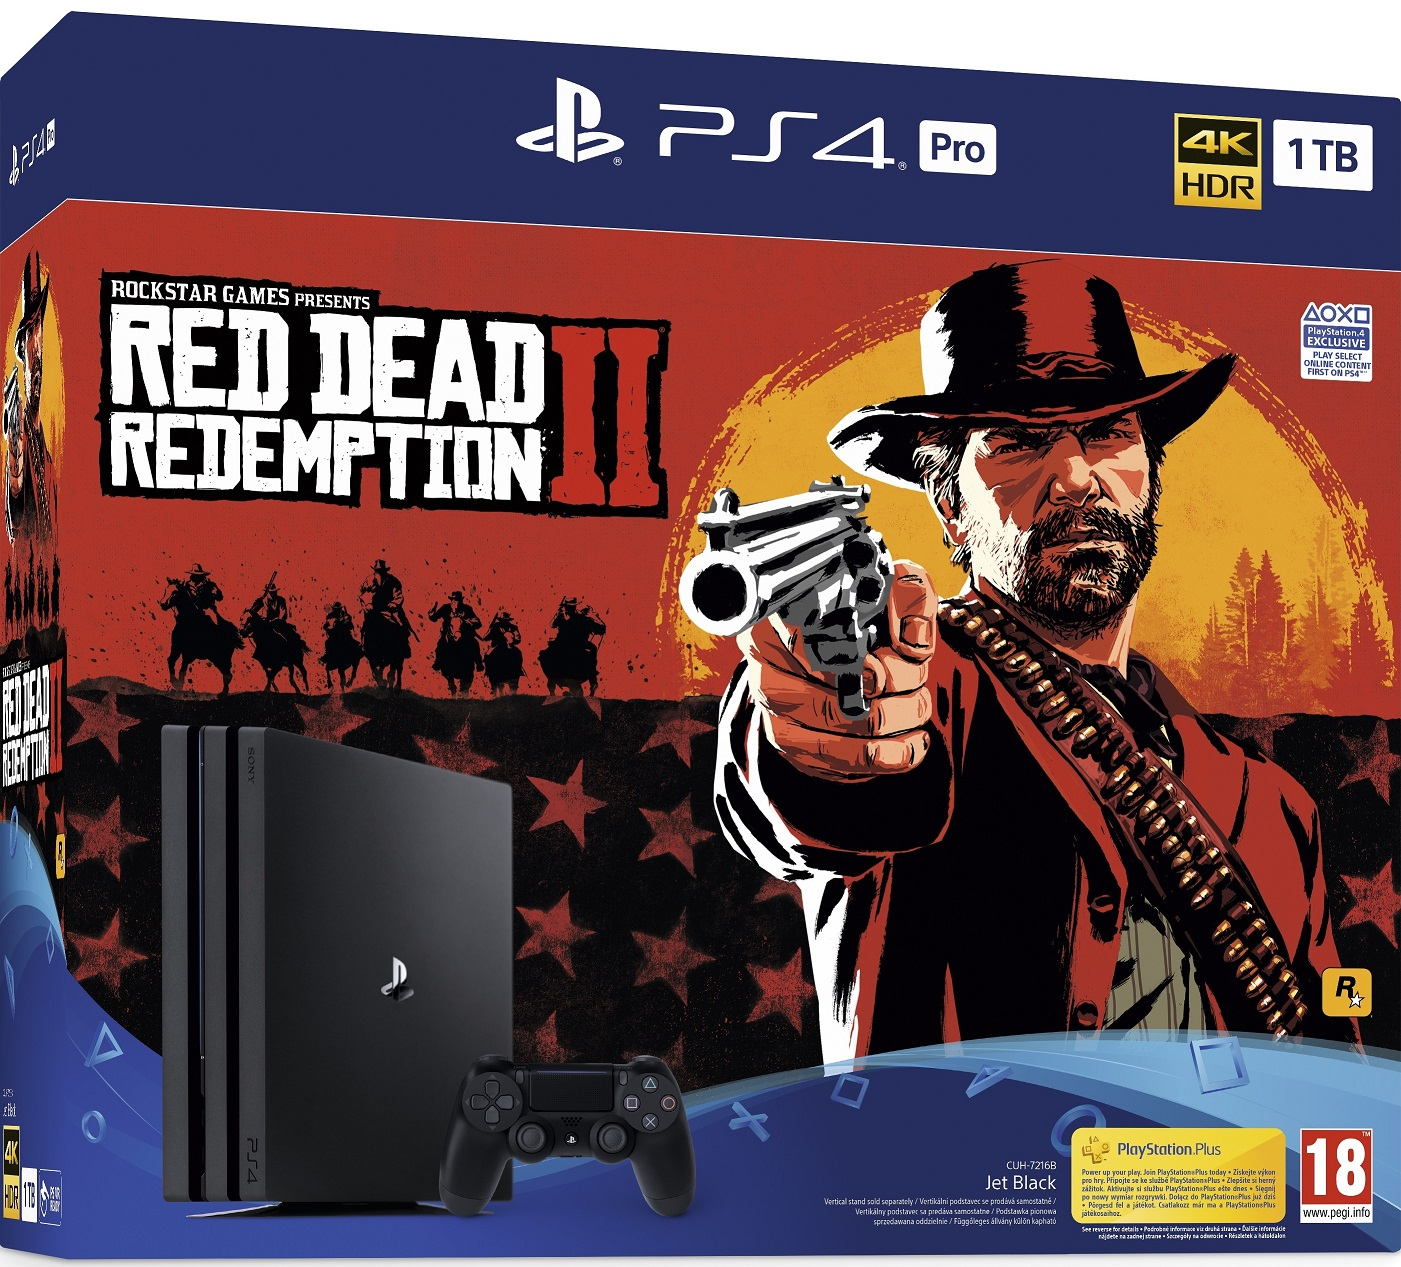 Sony PlayStation 4 Pro 1TB (PS4 Pro) + Red Dead Redemption 2 - PlayStation 4 Gépek